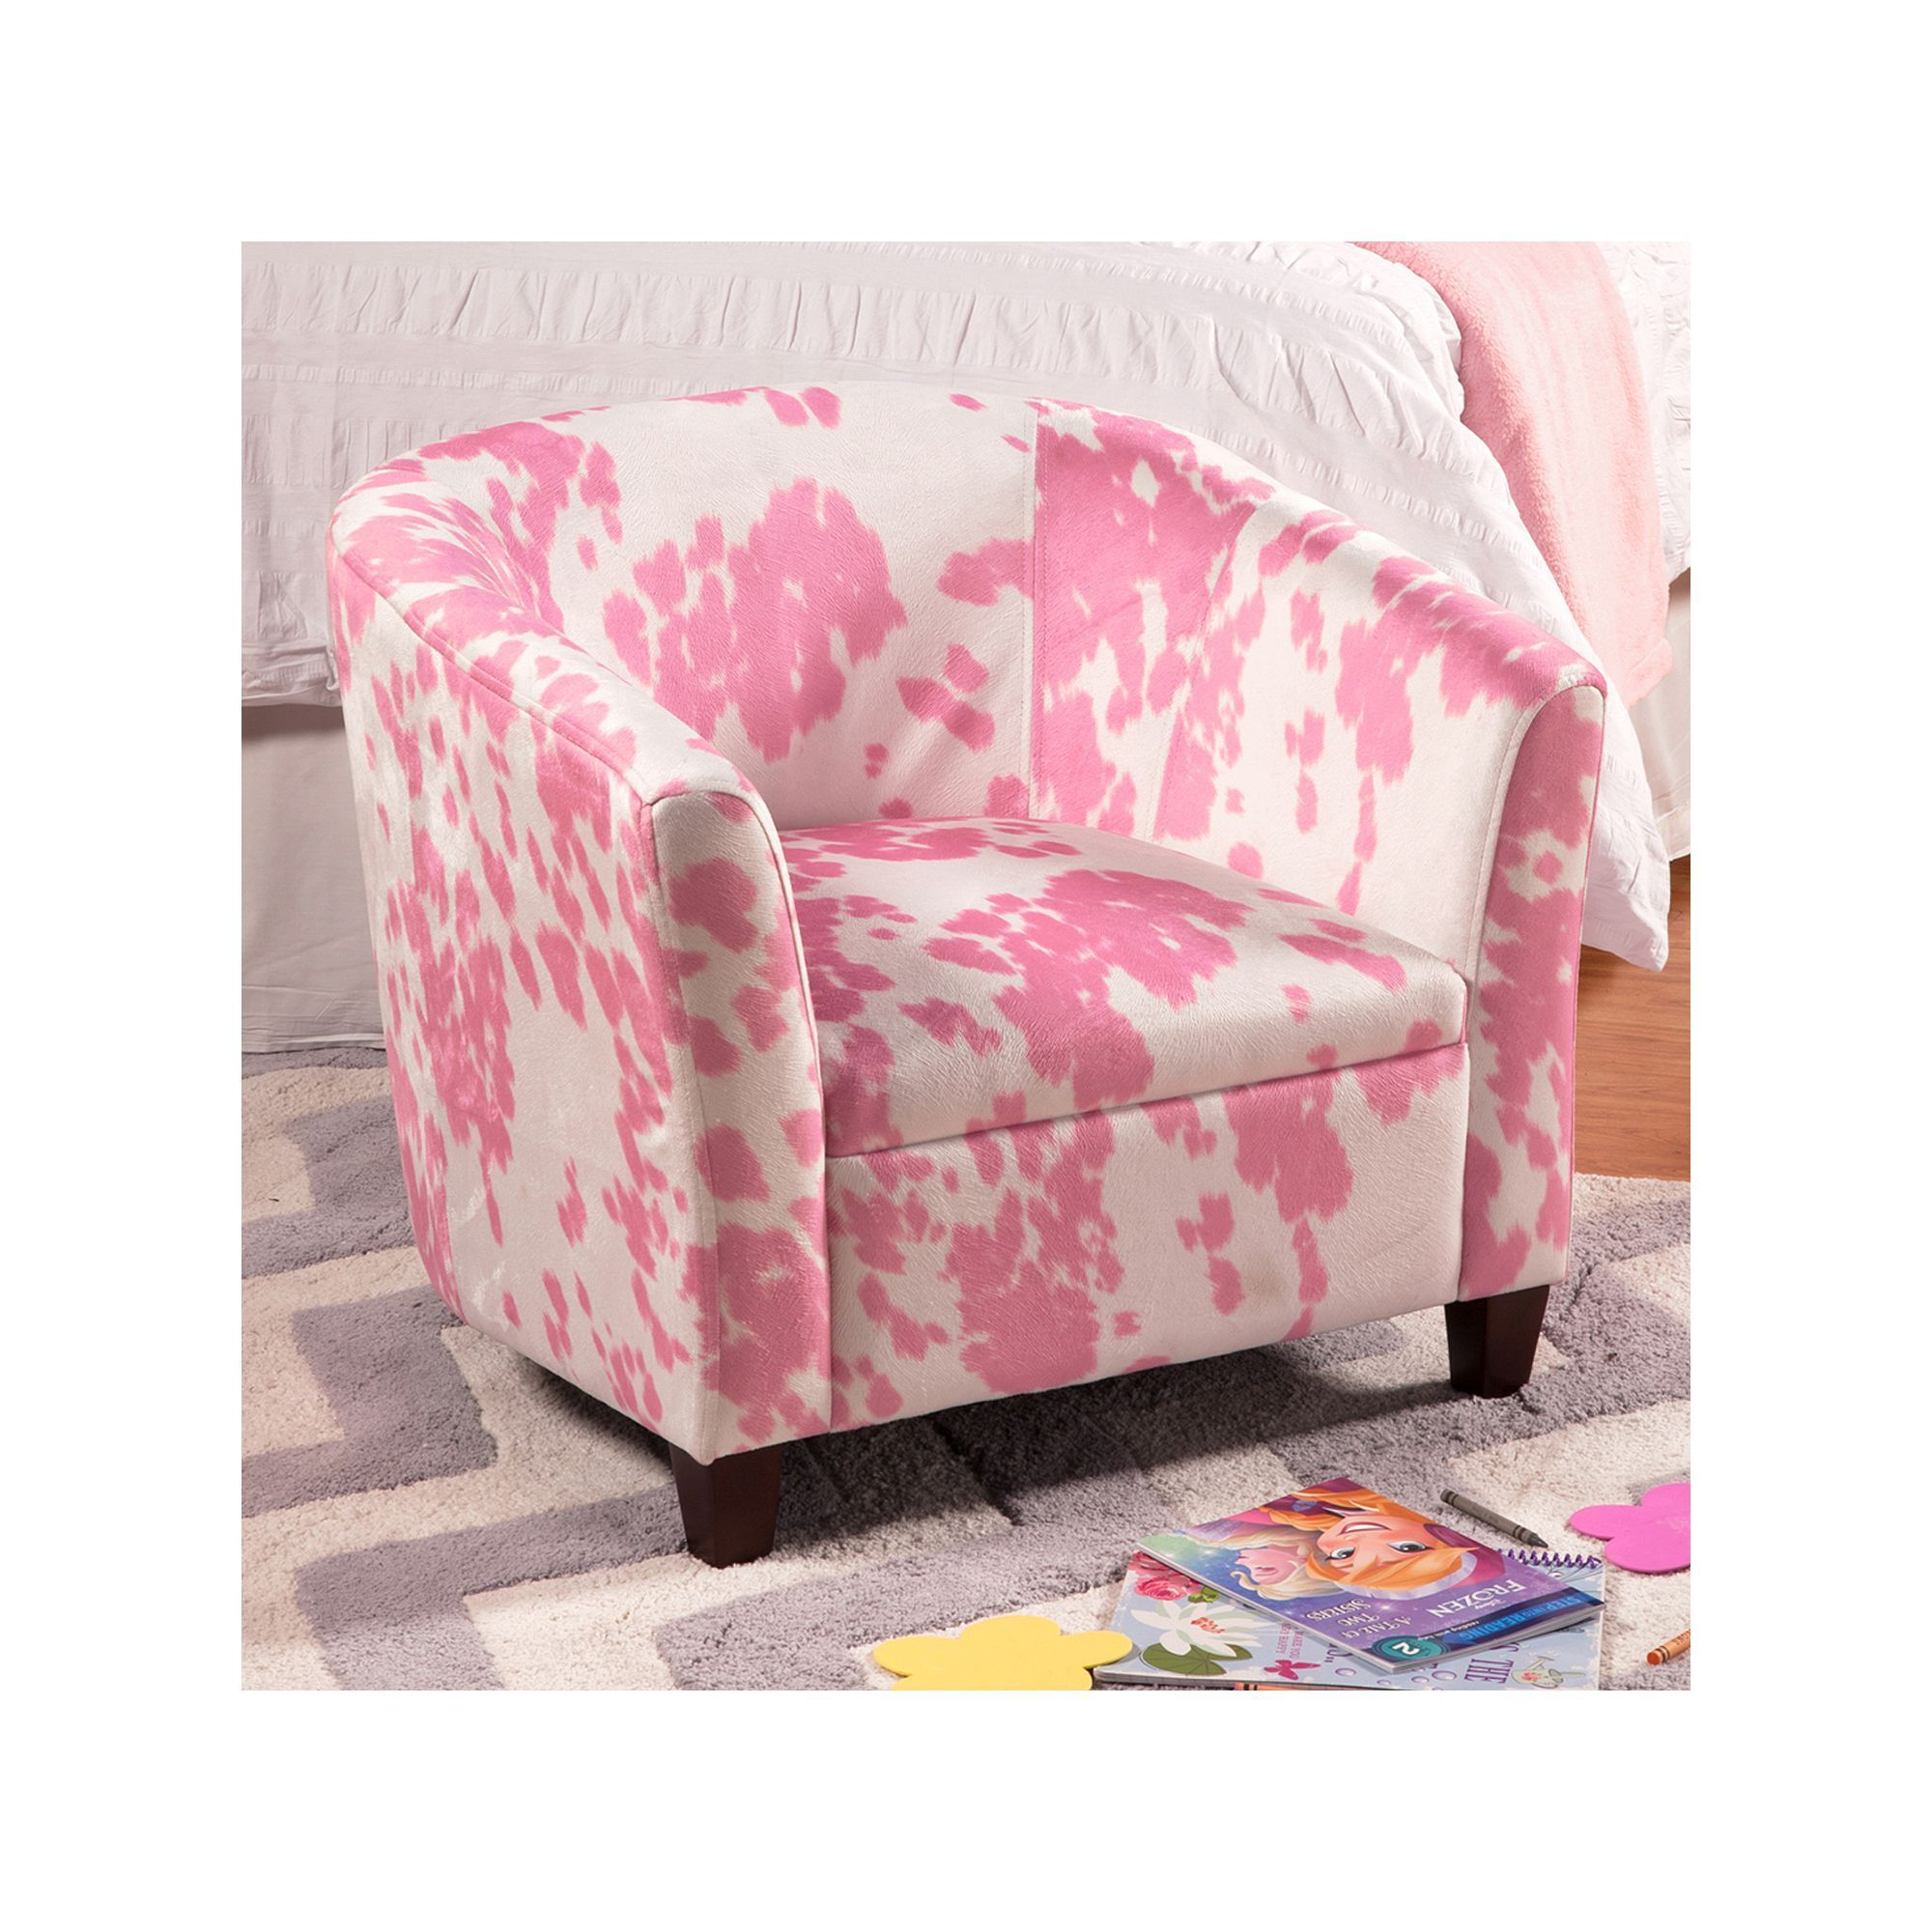 Homepop Cow Print Juvenile Accent Chair Pink